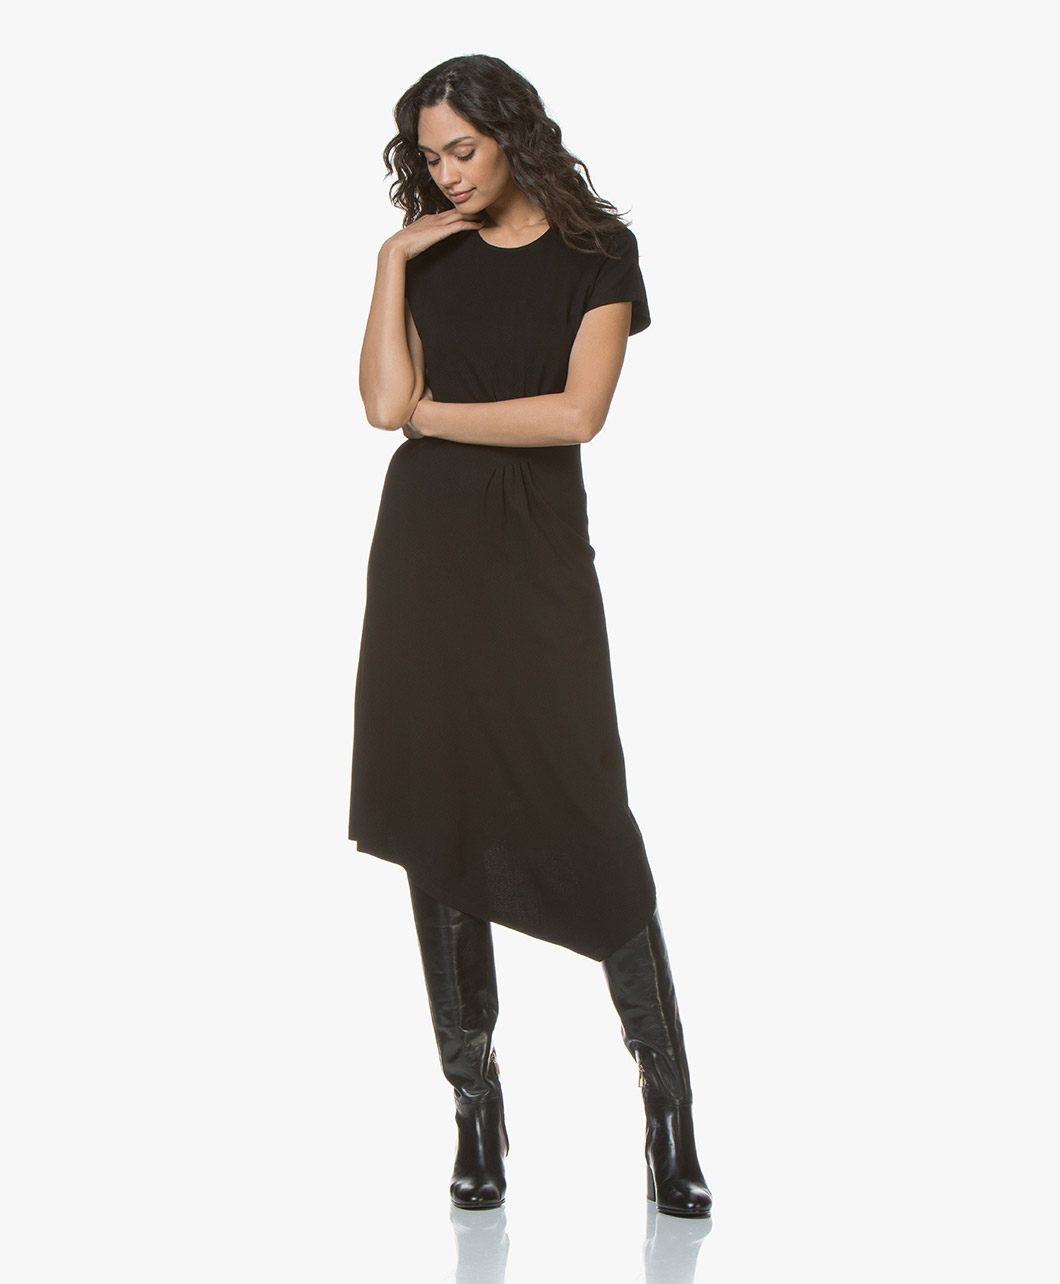 21faef251ff By Malene Birger Sketsy Twill Jersey Midi Dress - Black - q66160009 |  sketsy 050